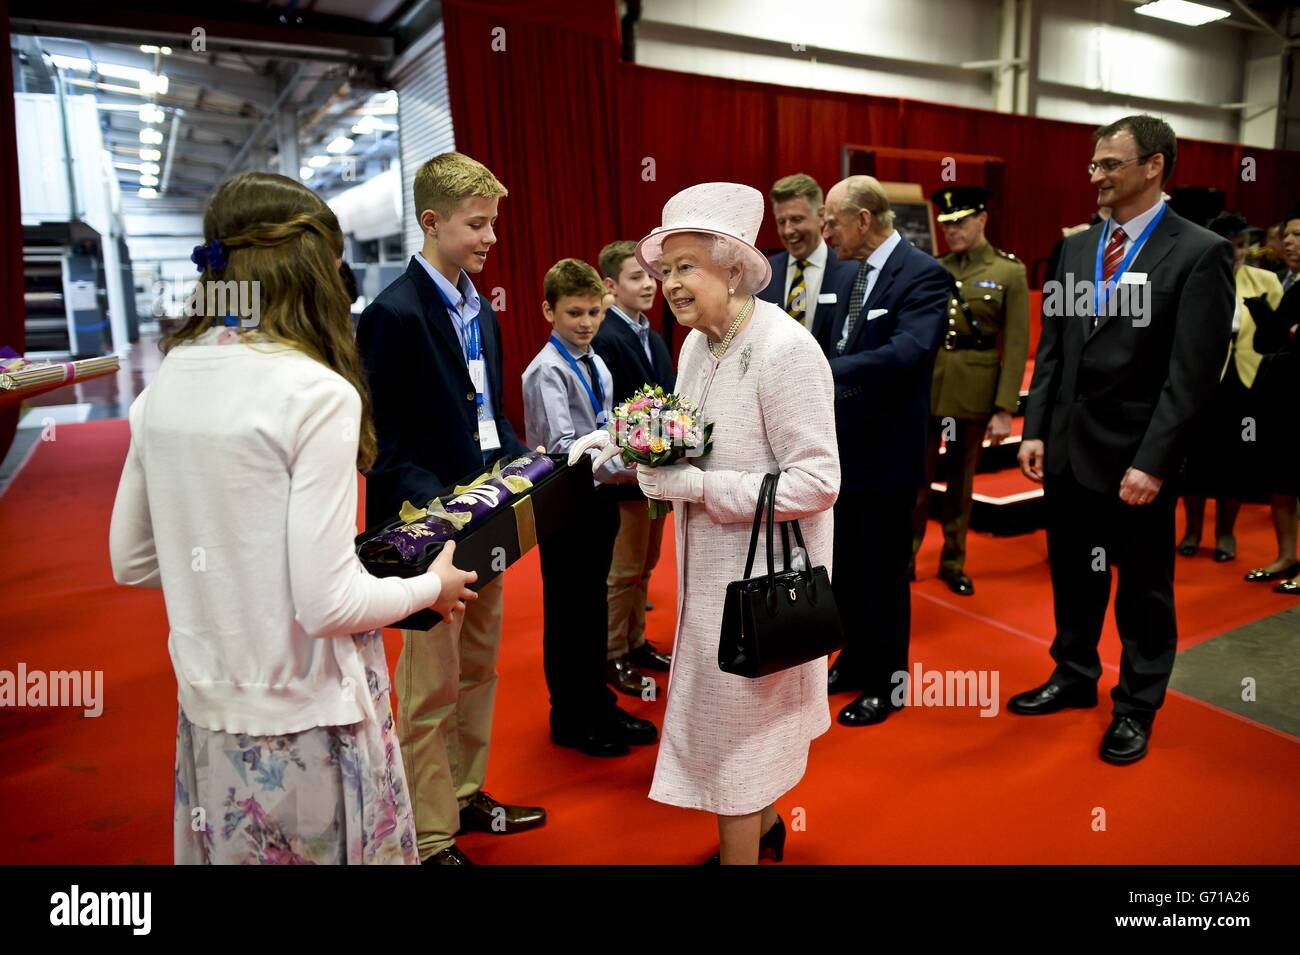 Uk greetings ltd stock photos uk greetings ltd stock images alamy the queen and duke of edinburgh visit wales stock image m4hsunfo